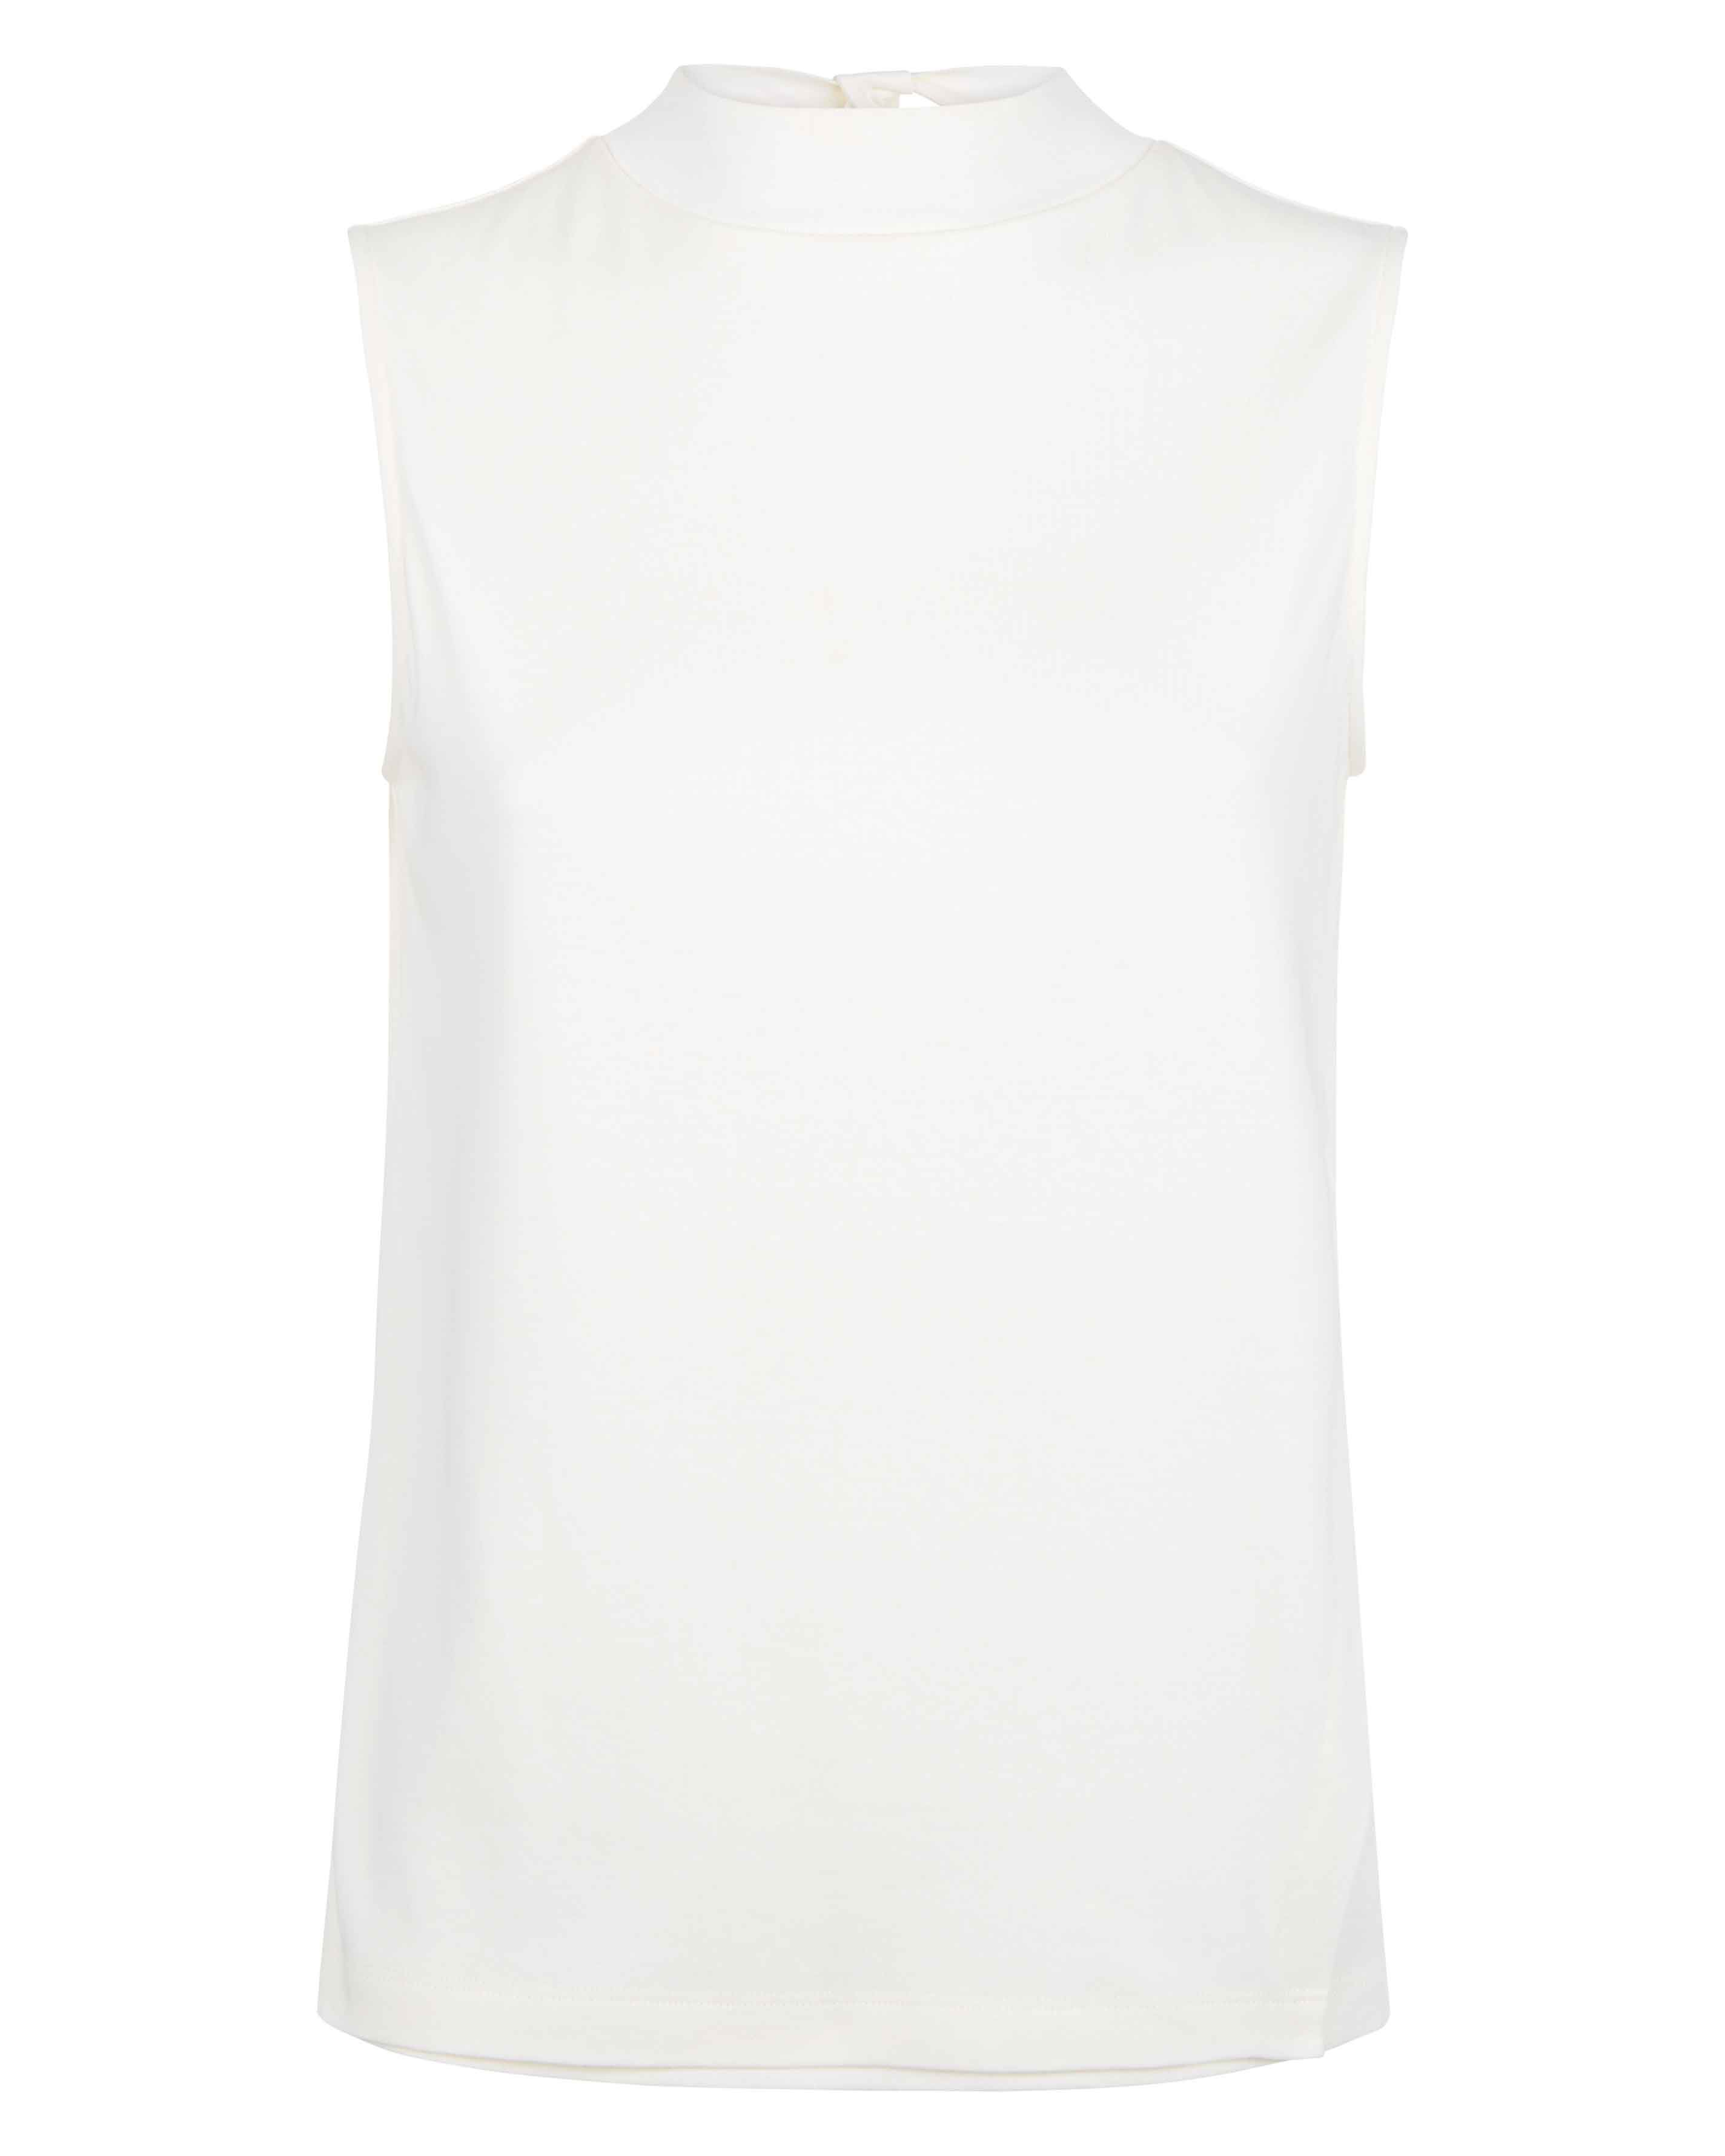 Jaeger Jersey Asymmetric Top, White